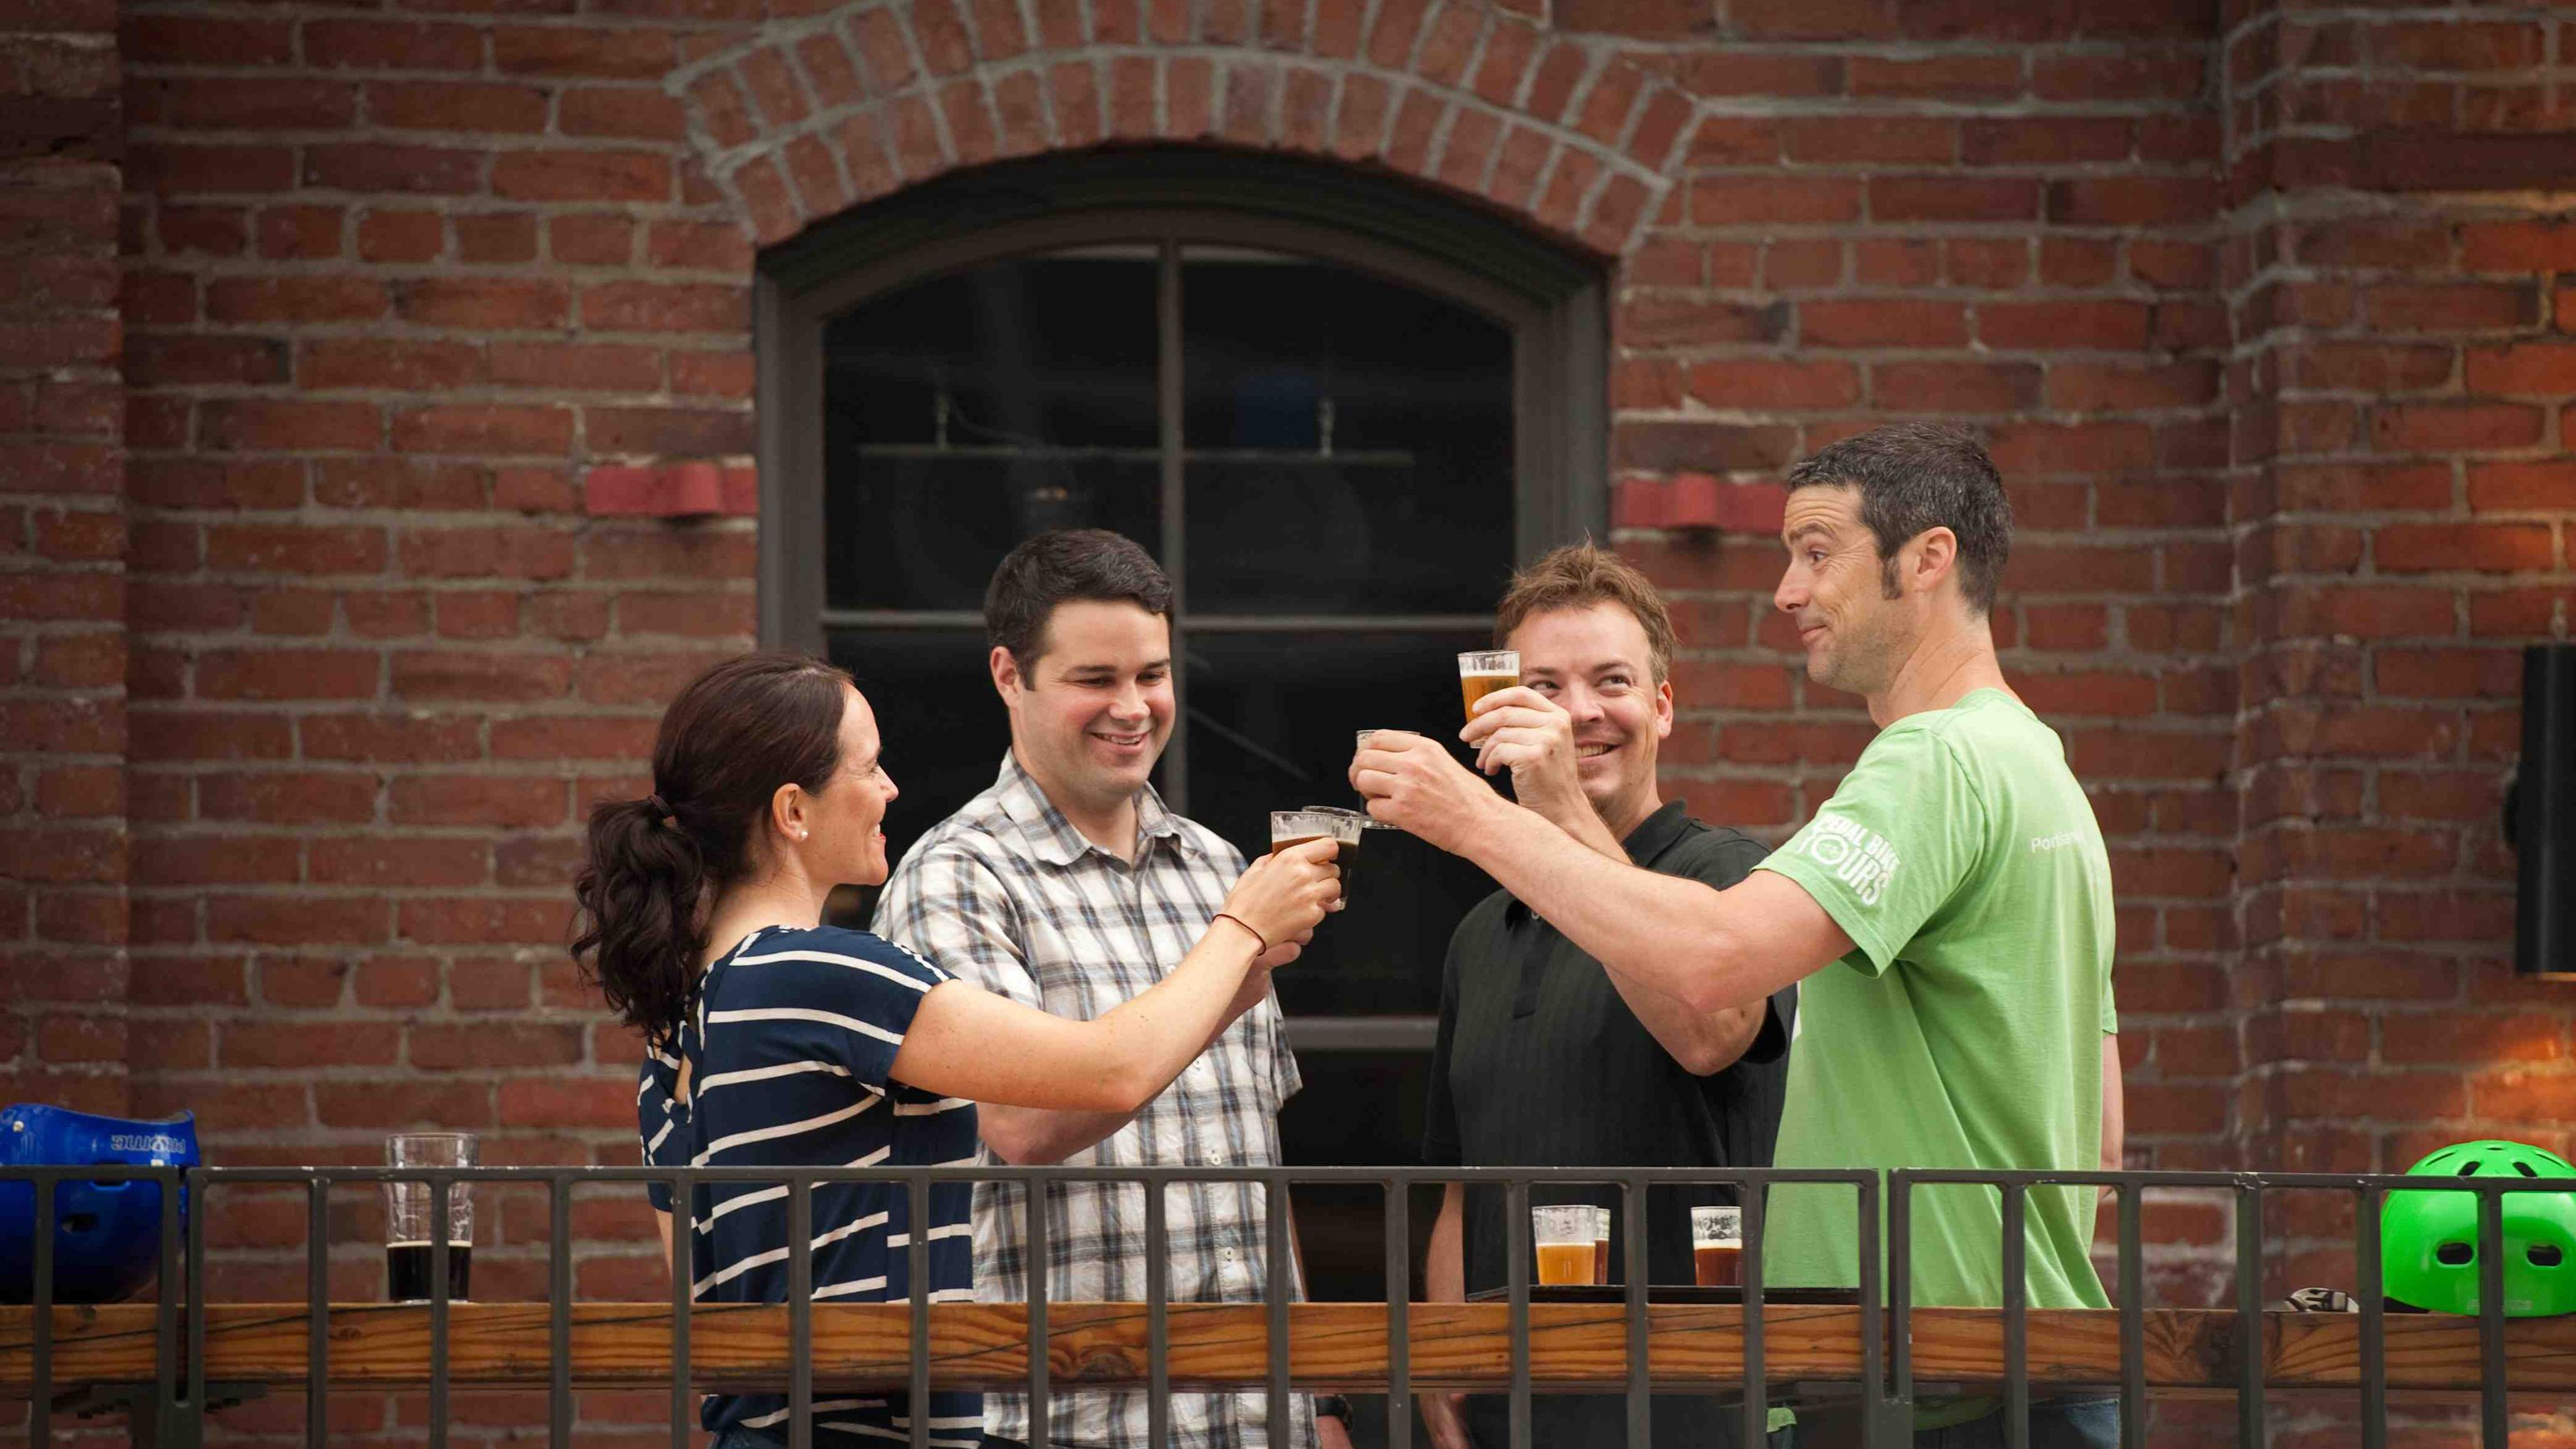 Group of people toasting at a brewery in Oregon